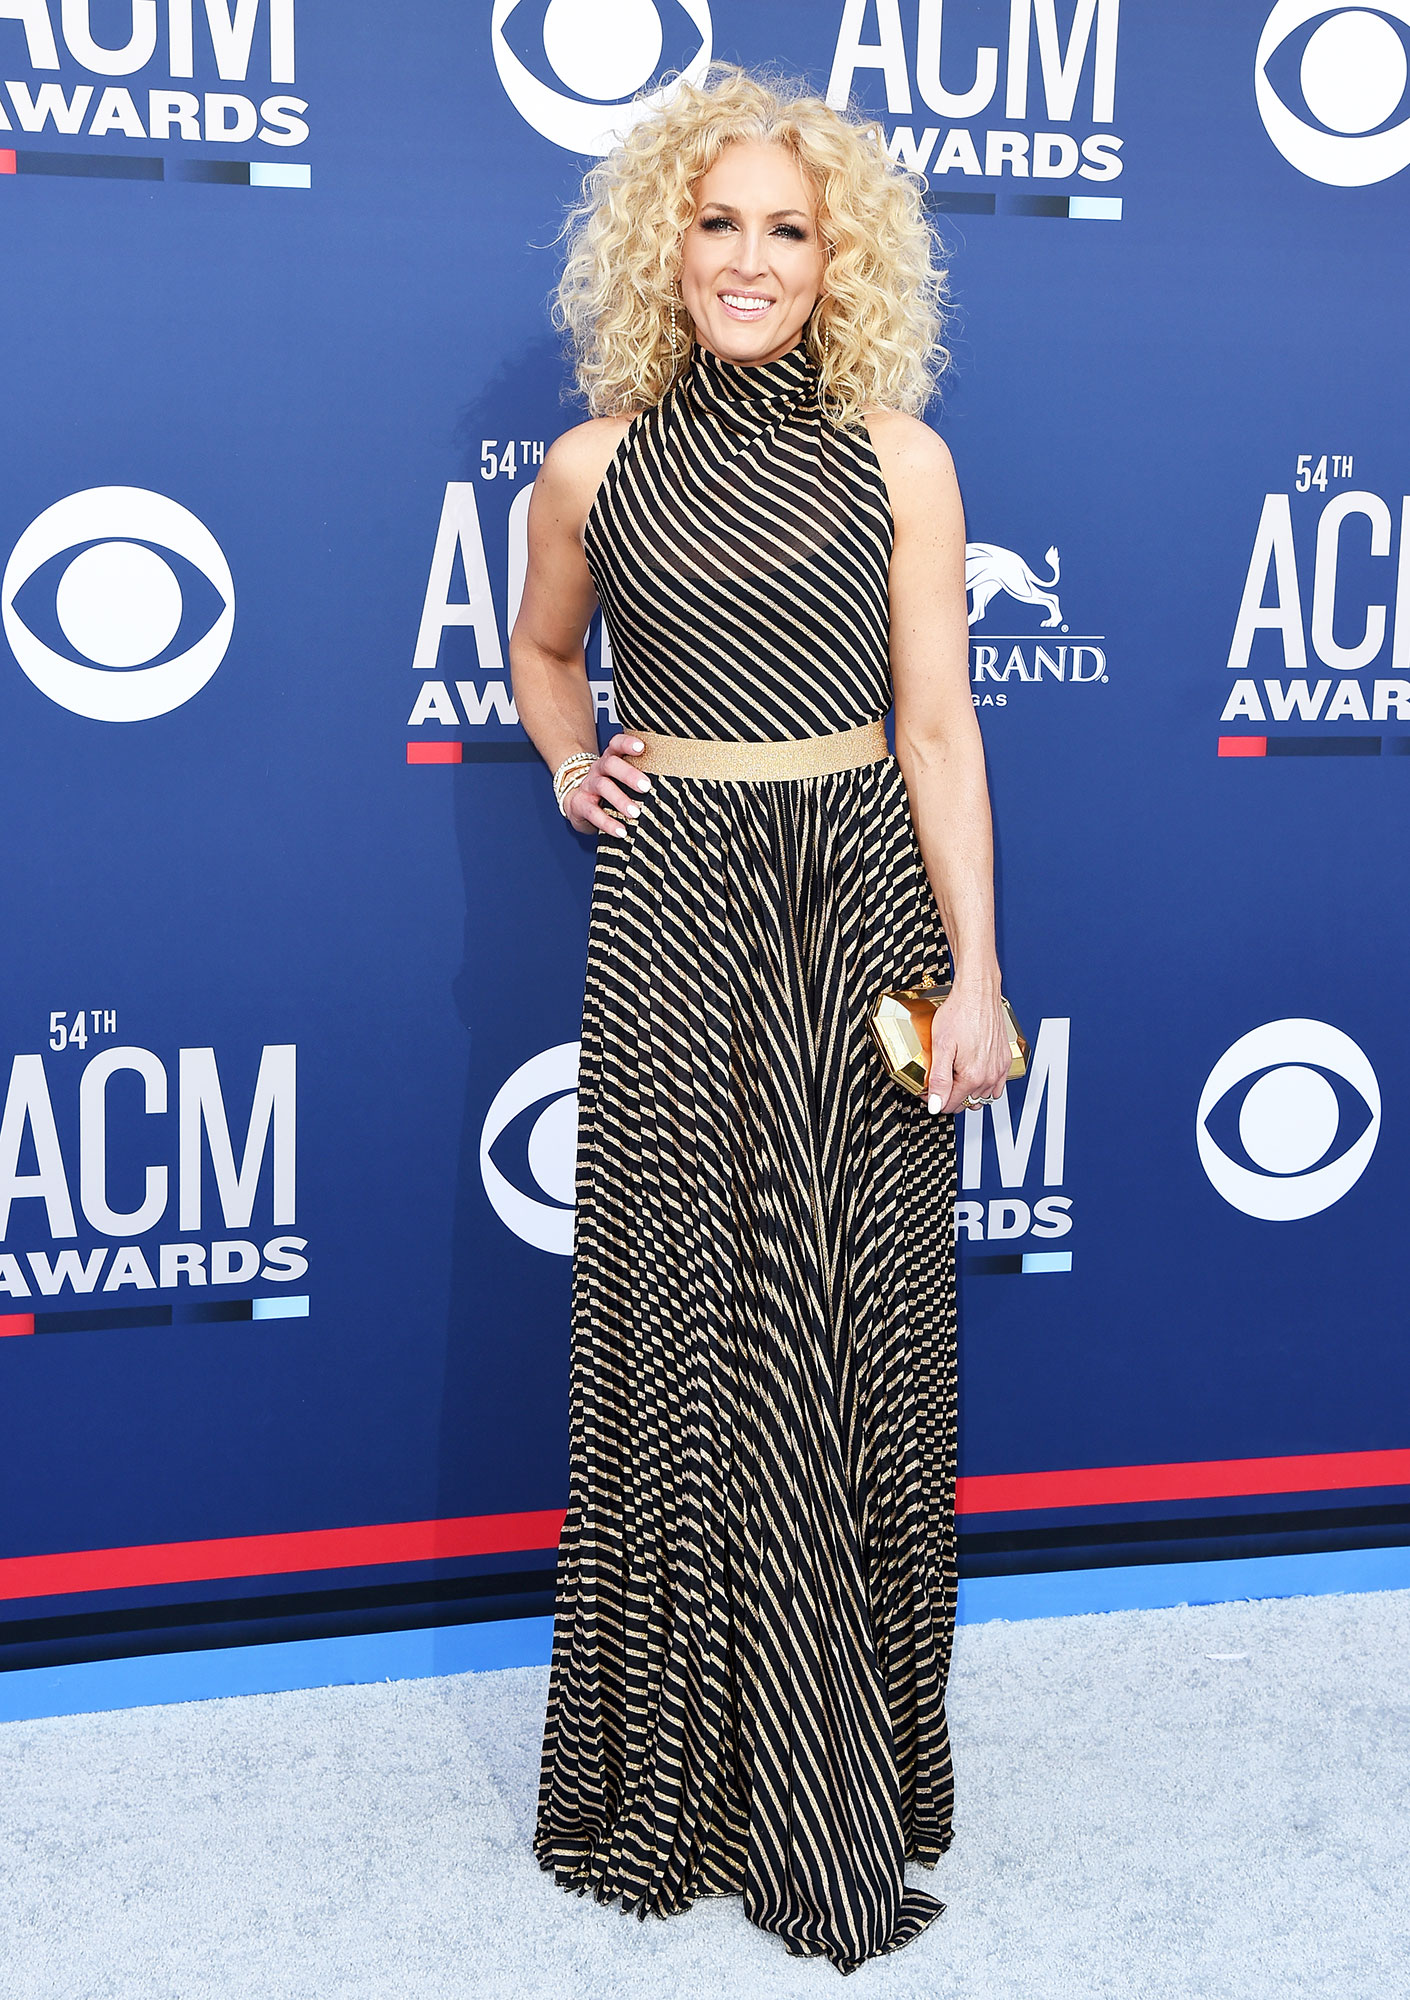 Kimberly Schlapman The Best Looks From the Country Music Awards Red Carpet - The Little Big Town frontwoman wore a black and white striped floor-length dress that was simply gorgeous.